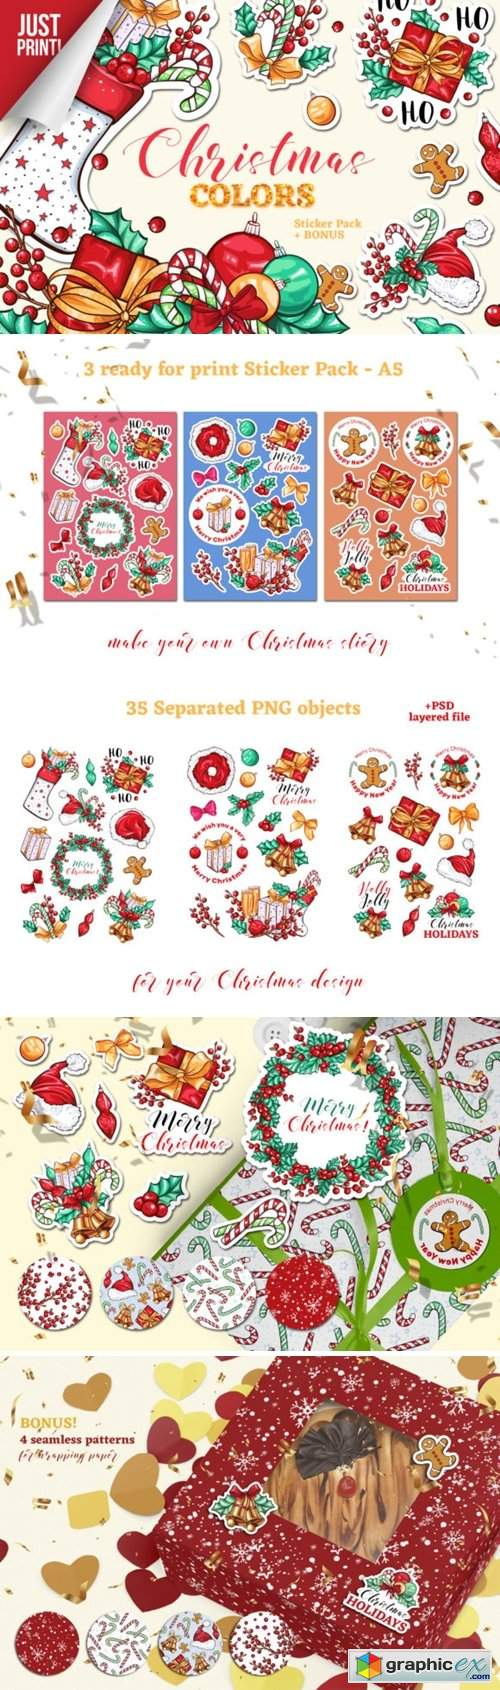 Christmas Colors Vector Sticker Pack